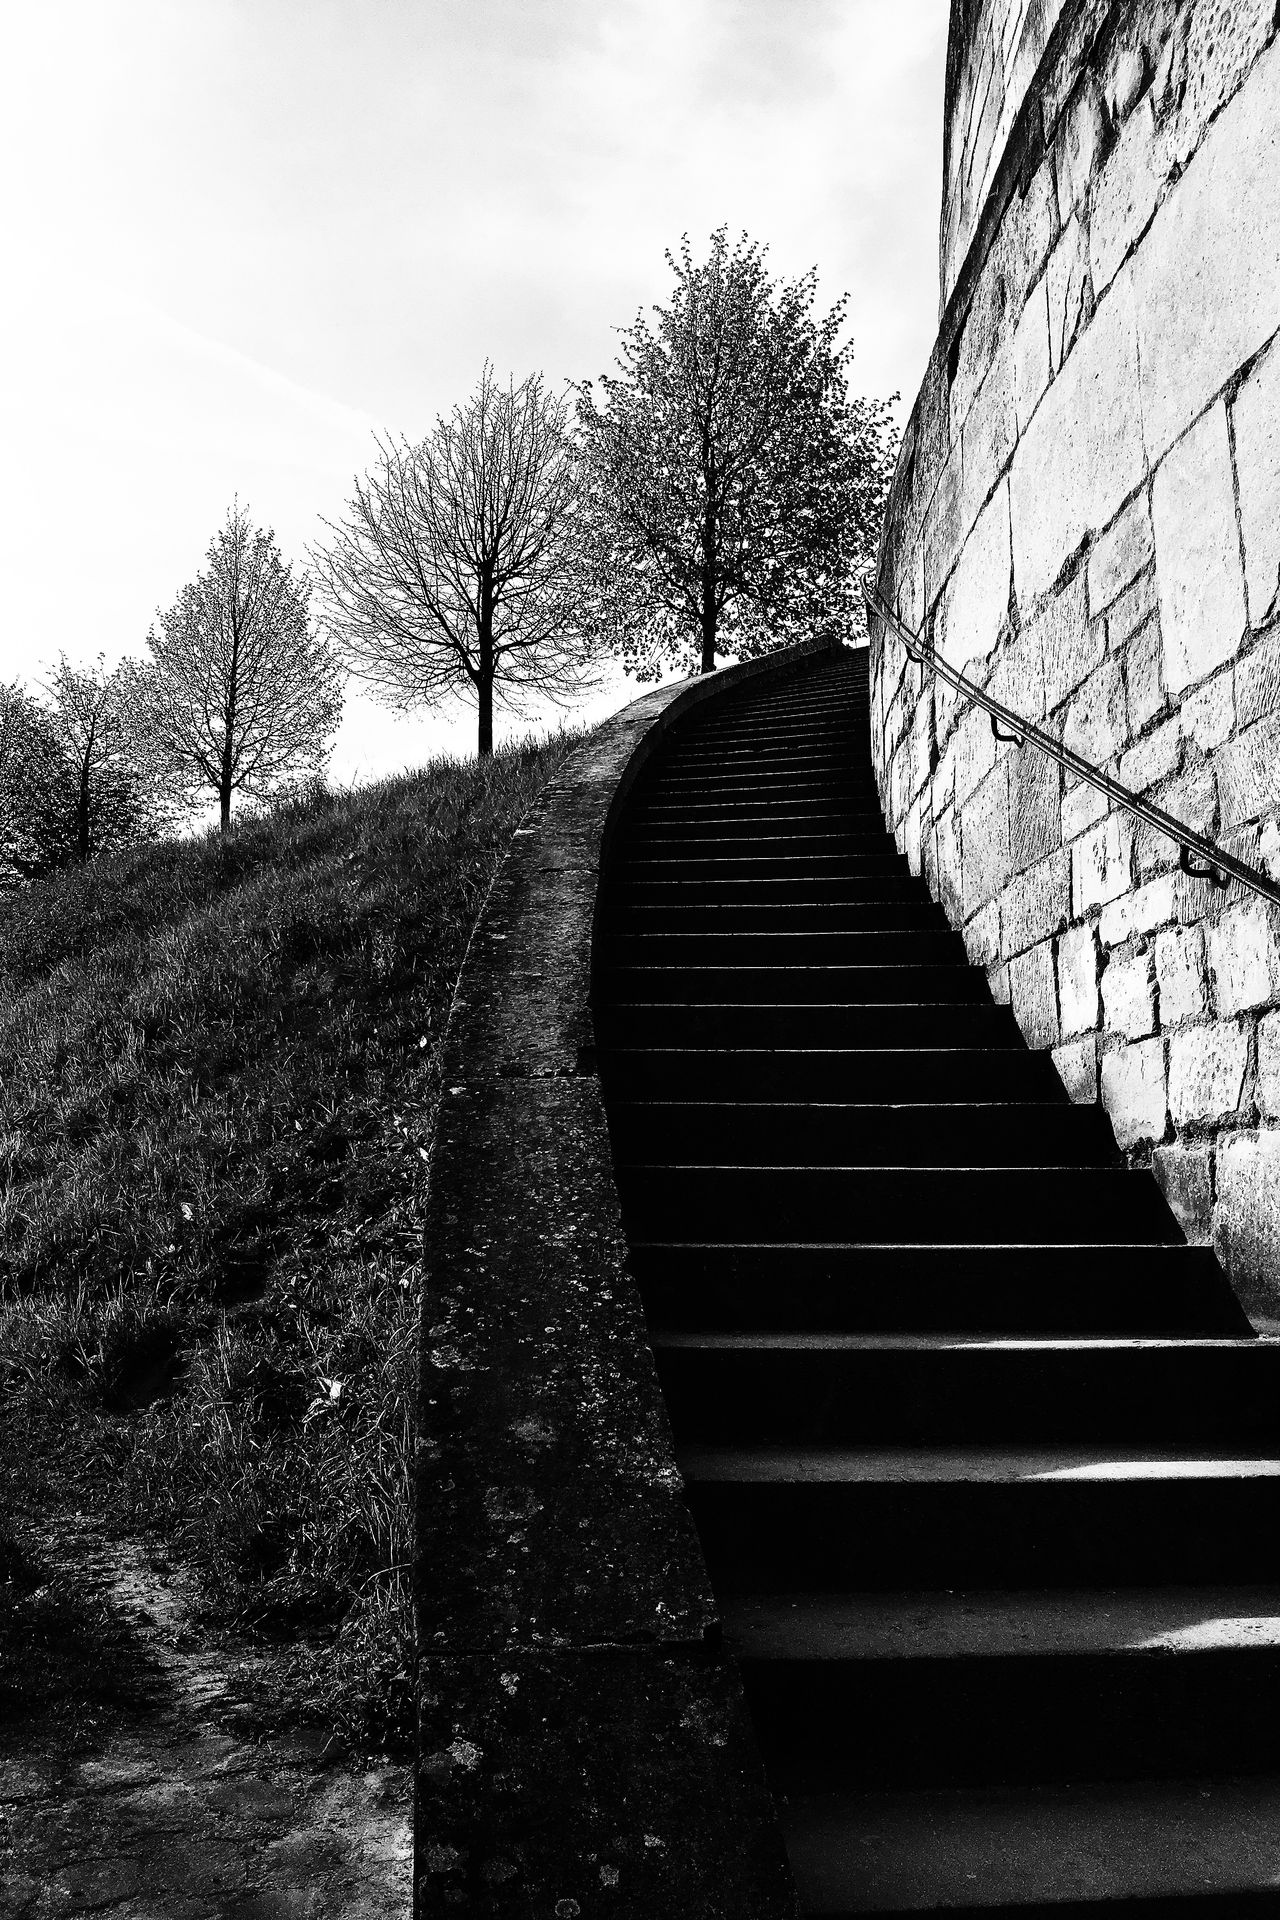 Montée vers le musée de la renaissance Architecture No People Outdoor Stairs Black and White